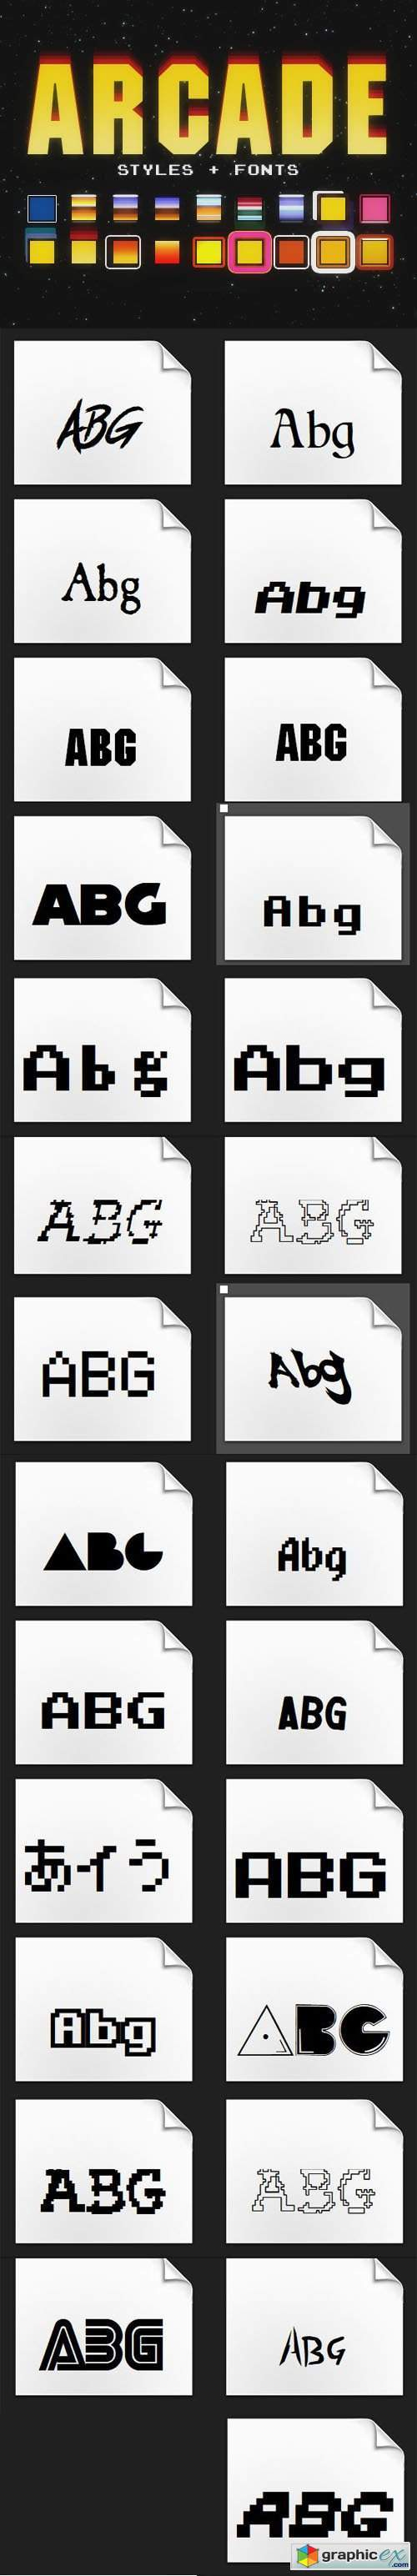 Arcade Pack - 18 Photoshop Styles & 27 Fonts